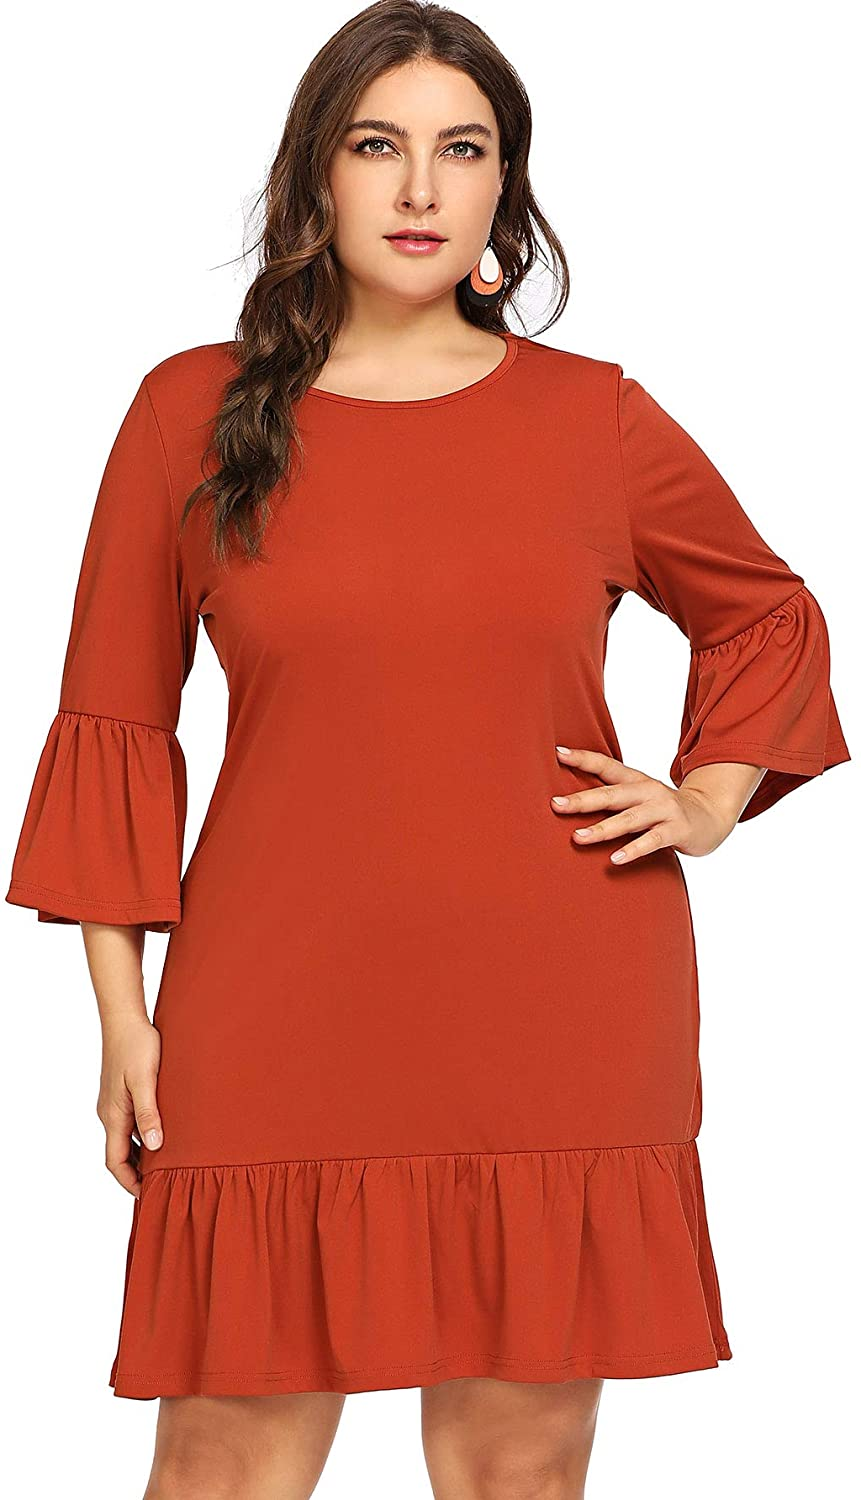 Milumia Women Plus Size Flared 3 4 Flared Ruffle Sleeves Fit Flare A Line Tunic Bodycon Dress Casual